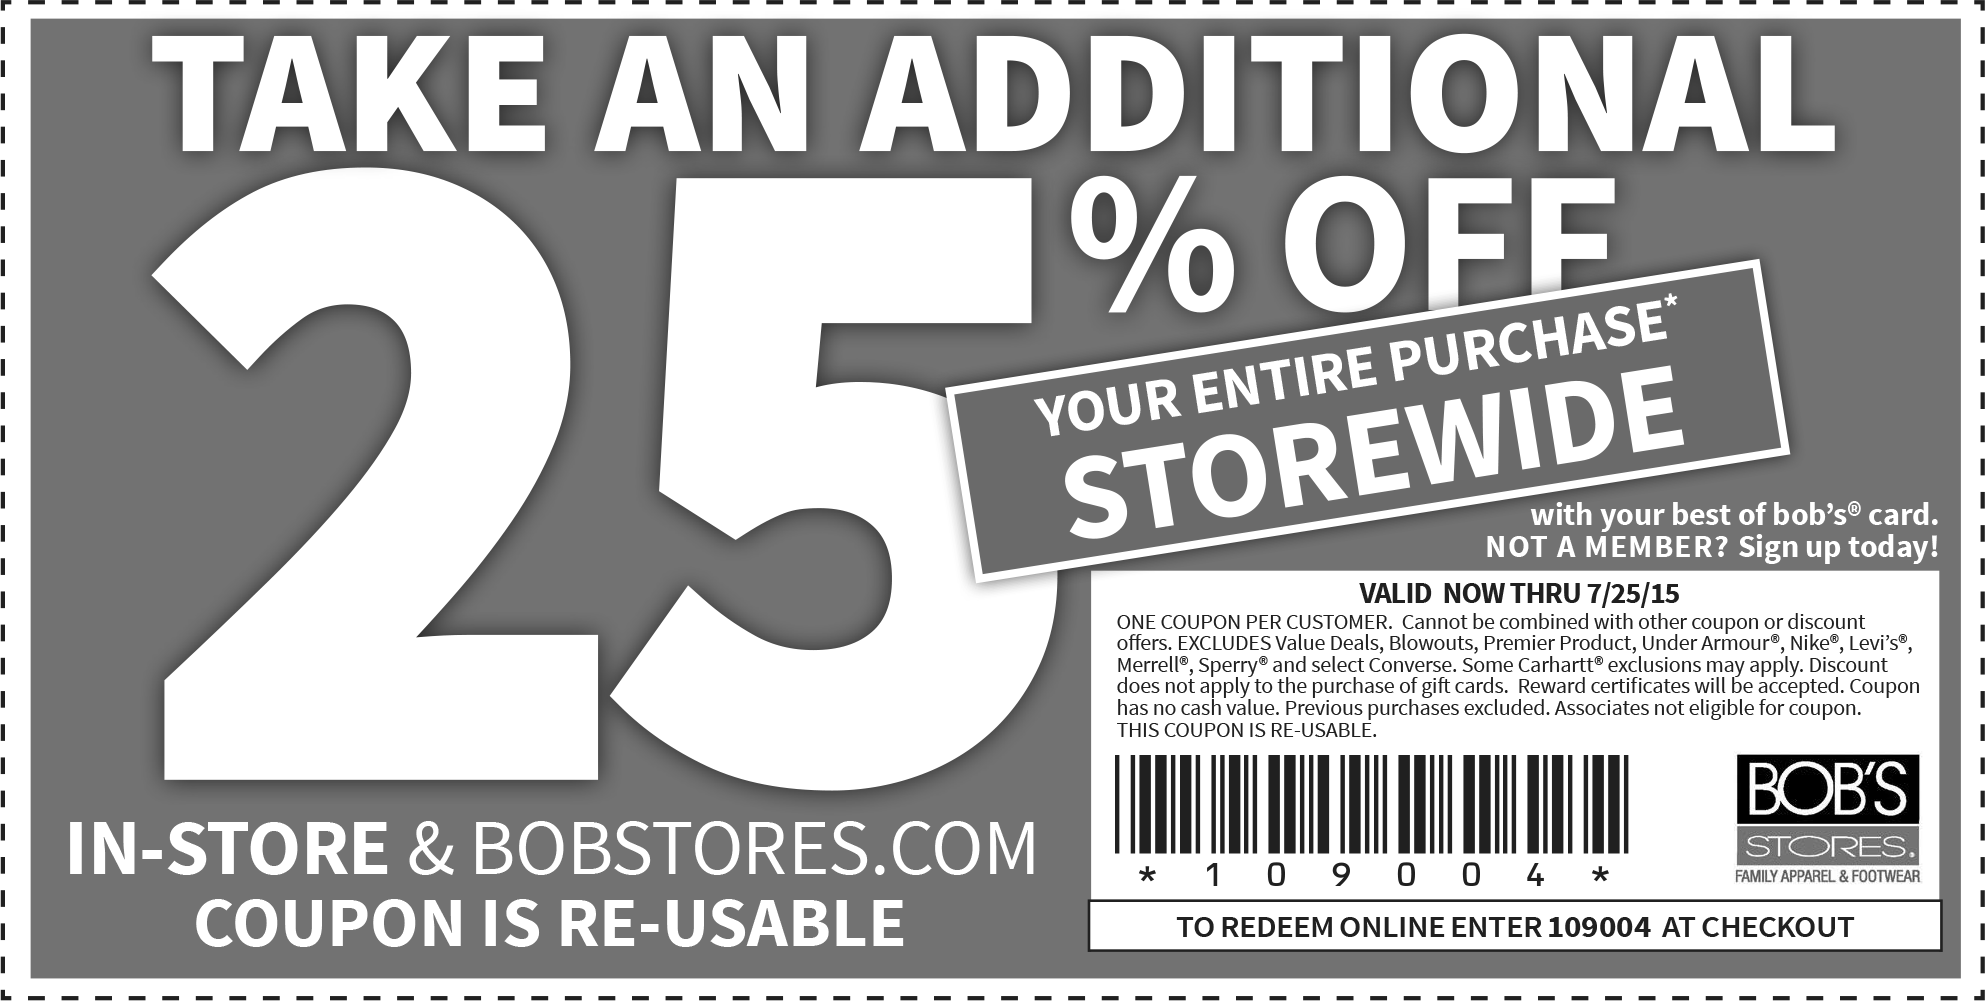 Bobs Stores Coupon February 2017 25% off everything at Bobs Stores, or online via promo code 109004